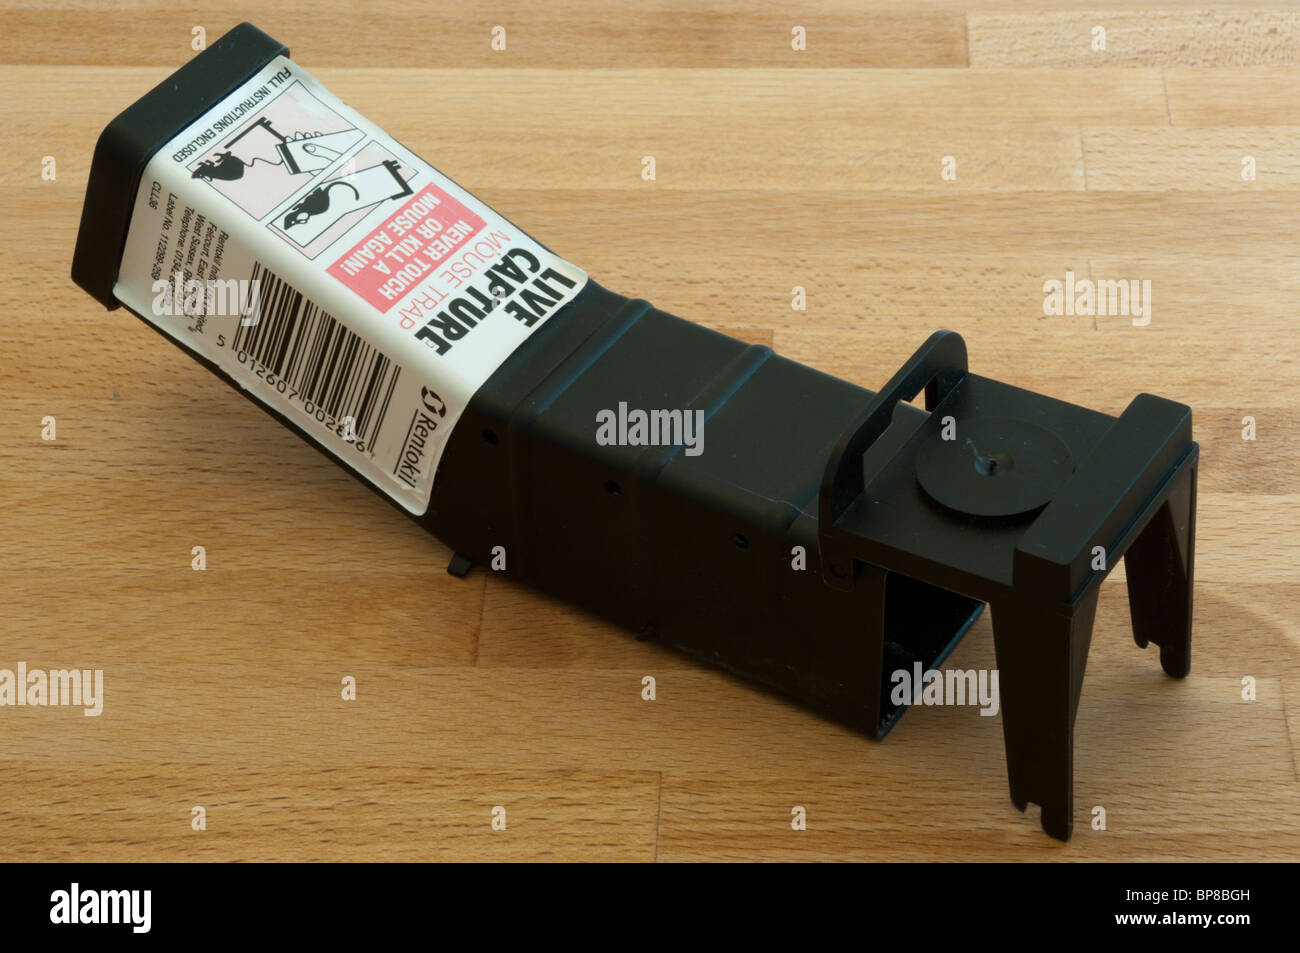 A humane mouse trap - Stock Image